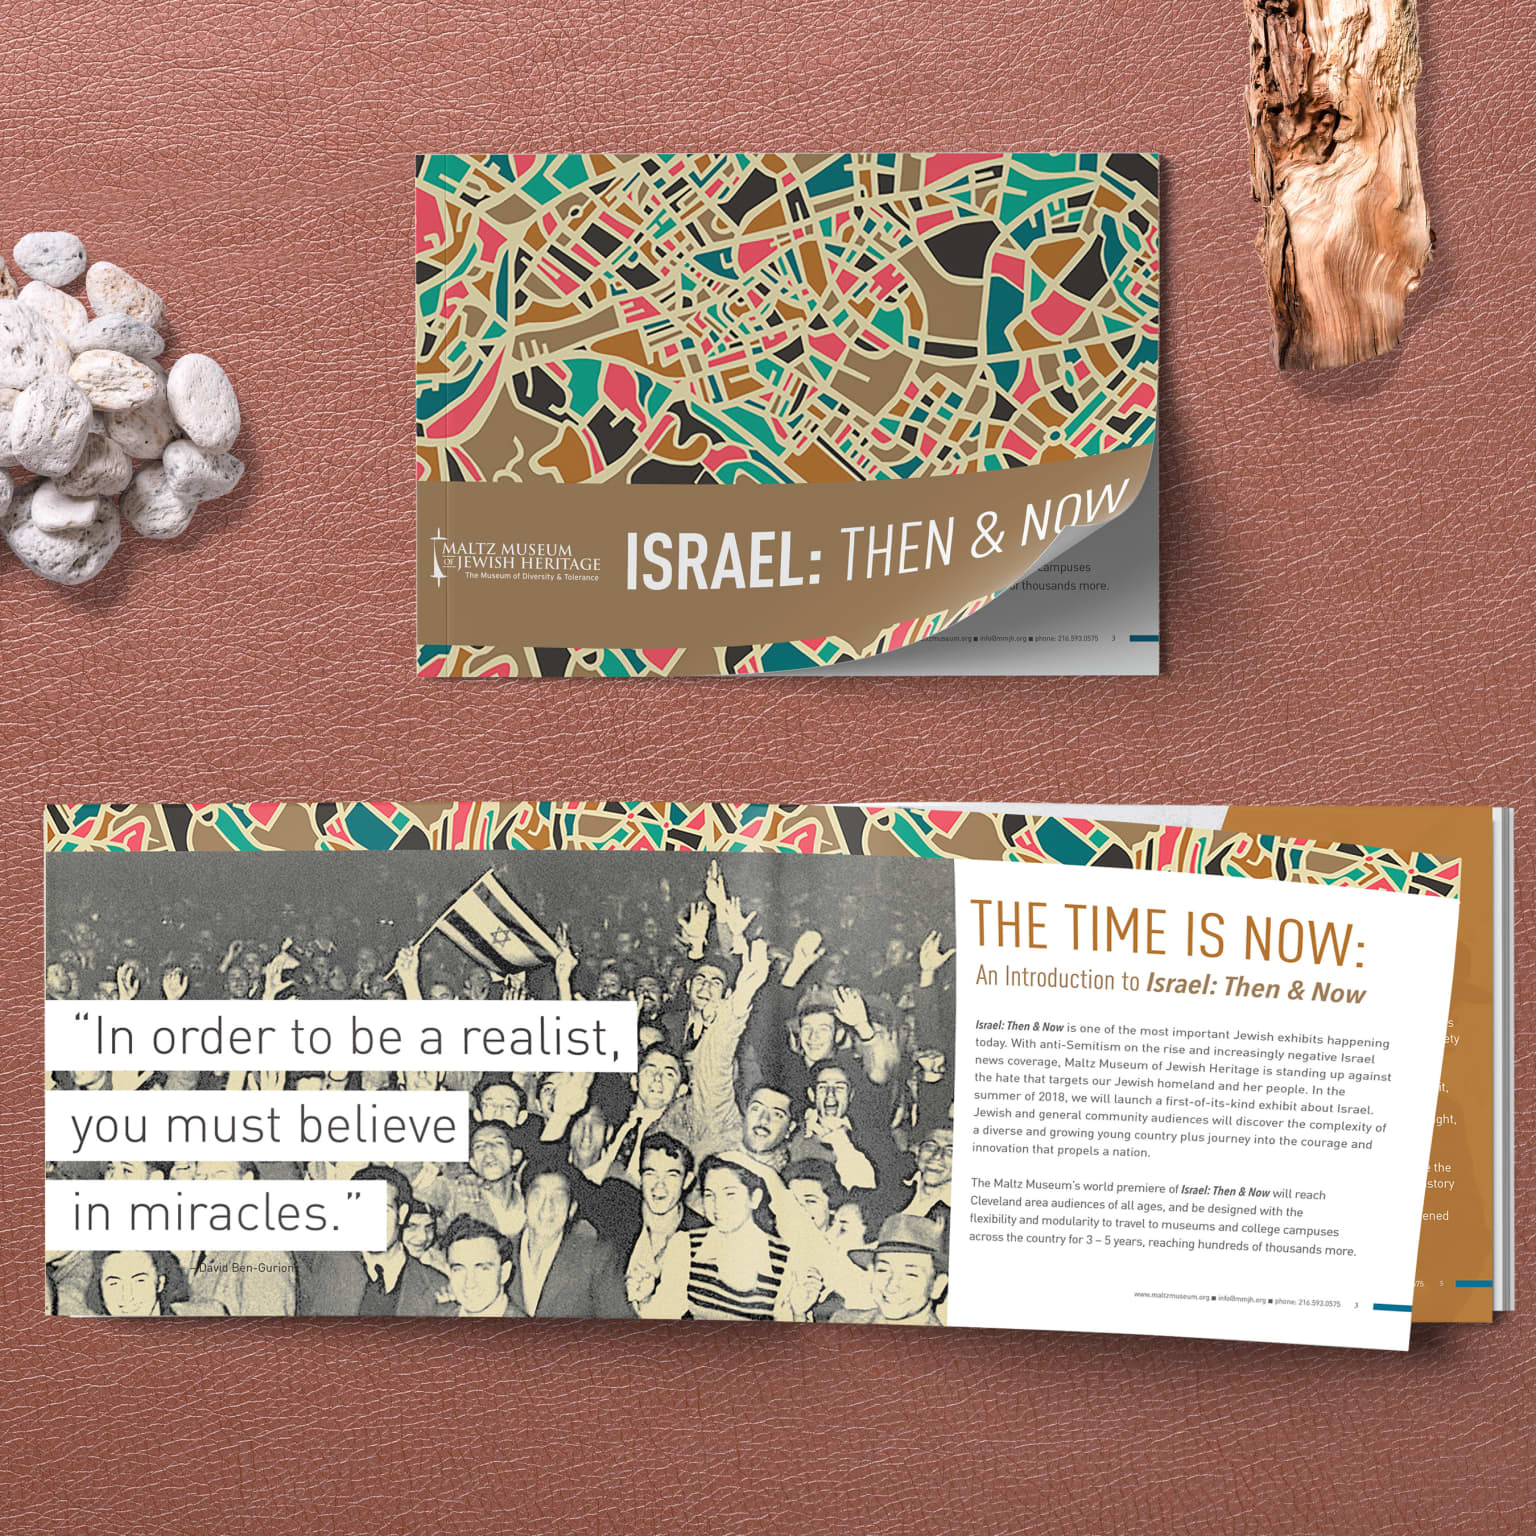 Israel: Then & Now exhibit booklet